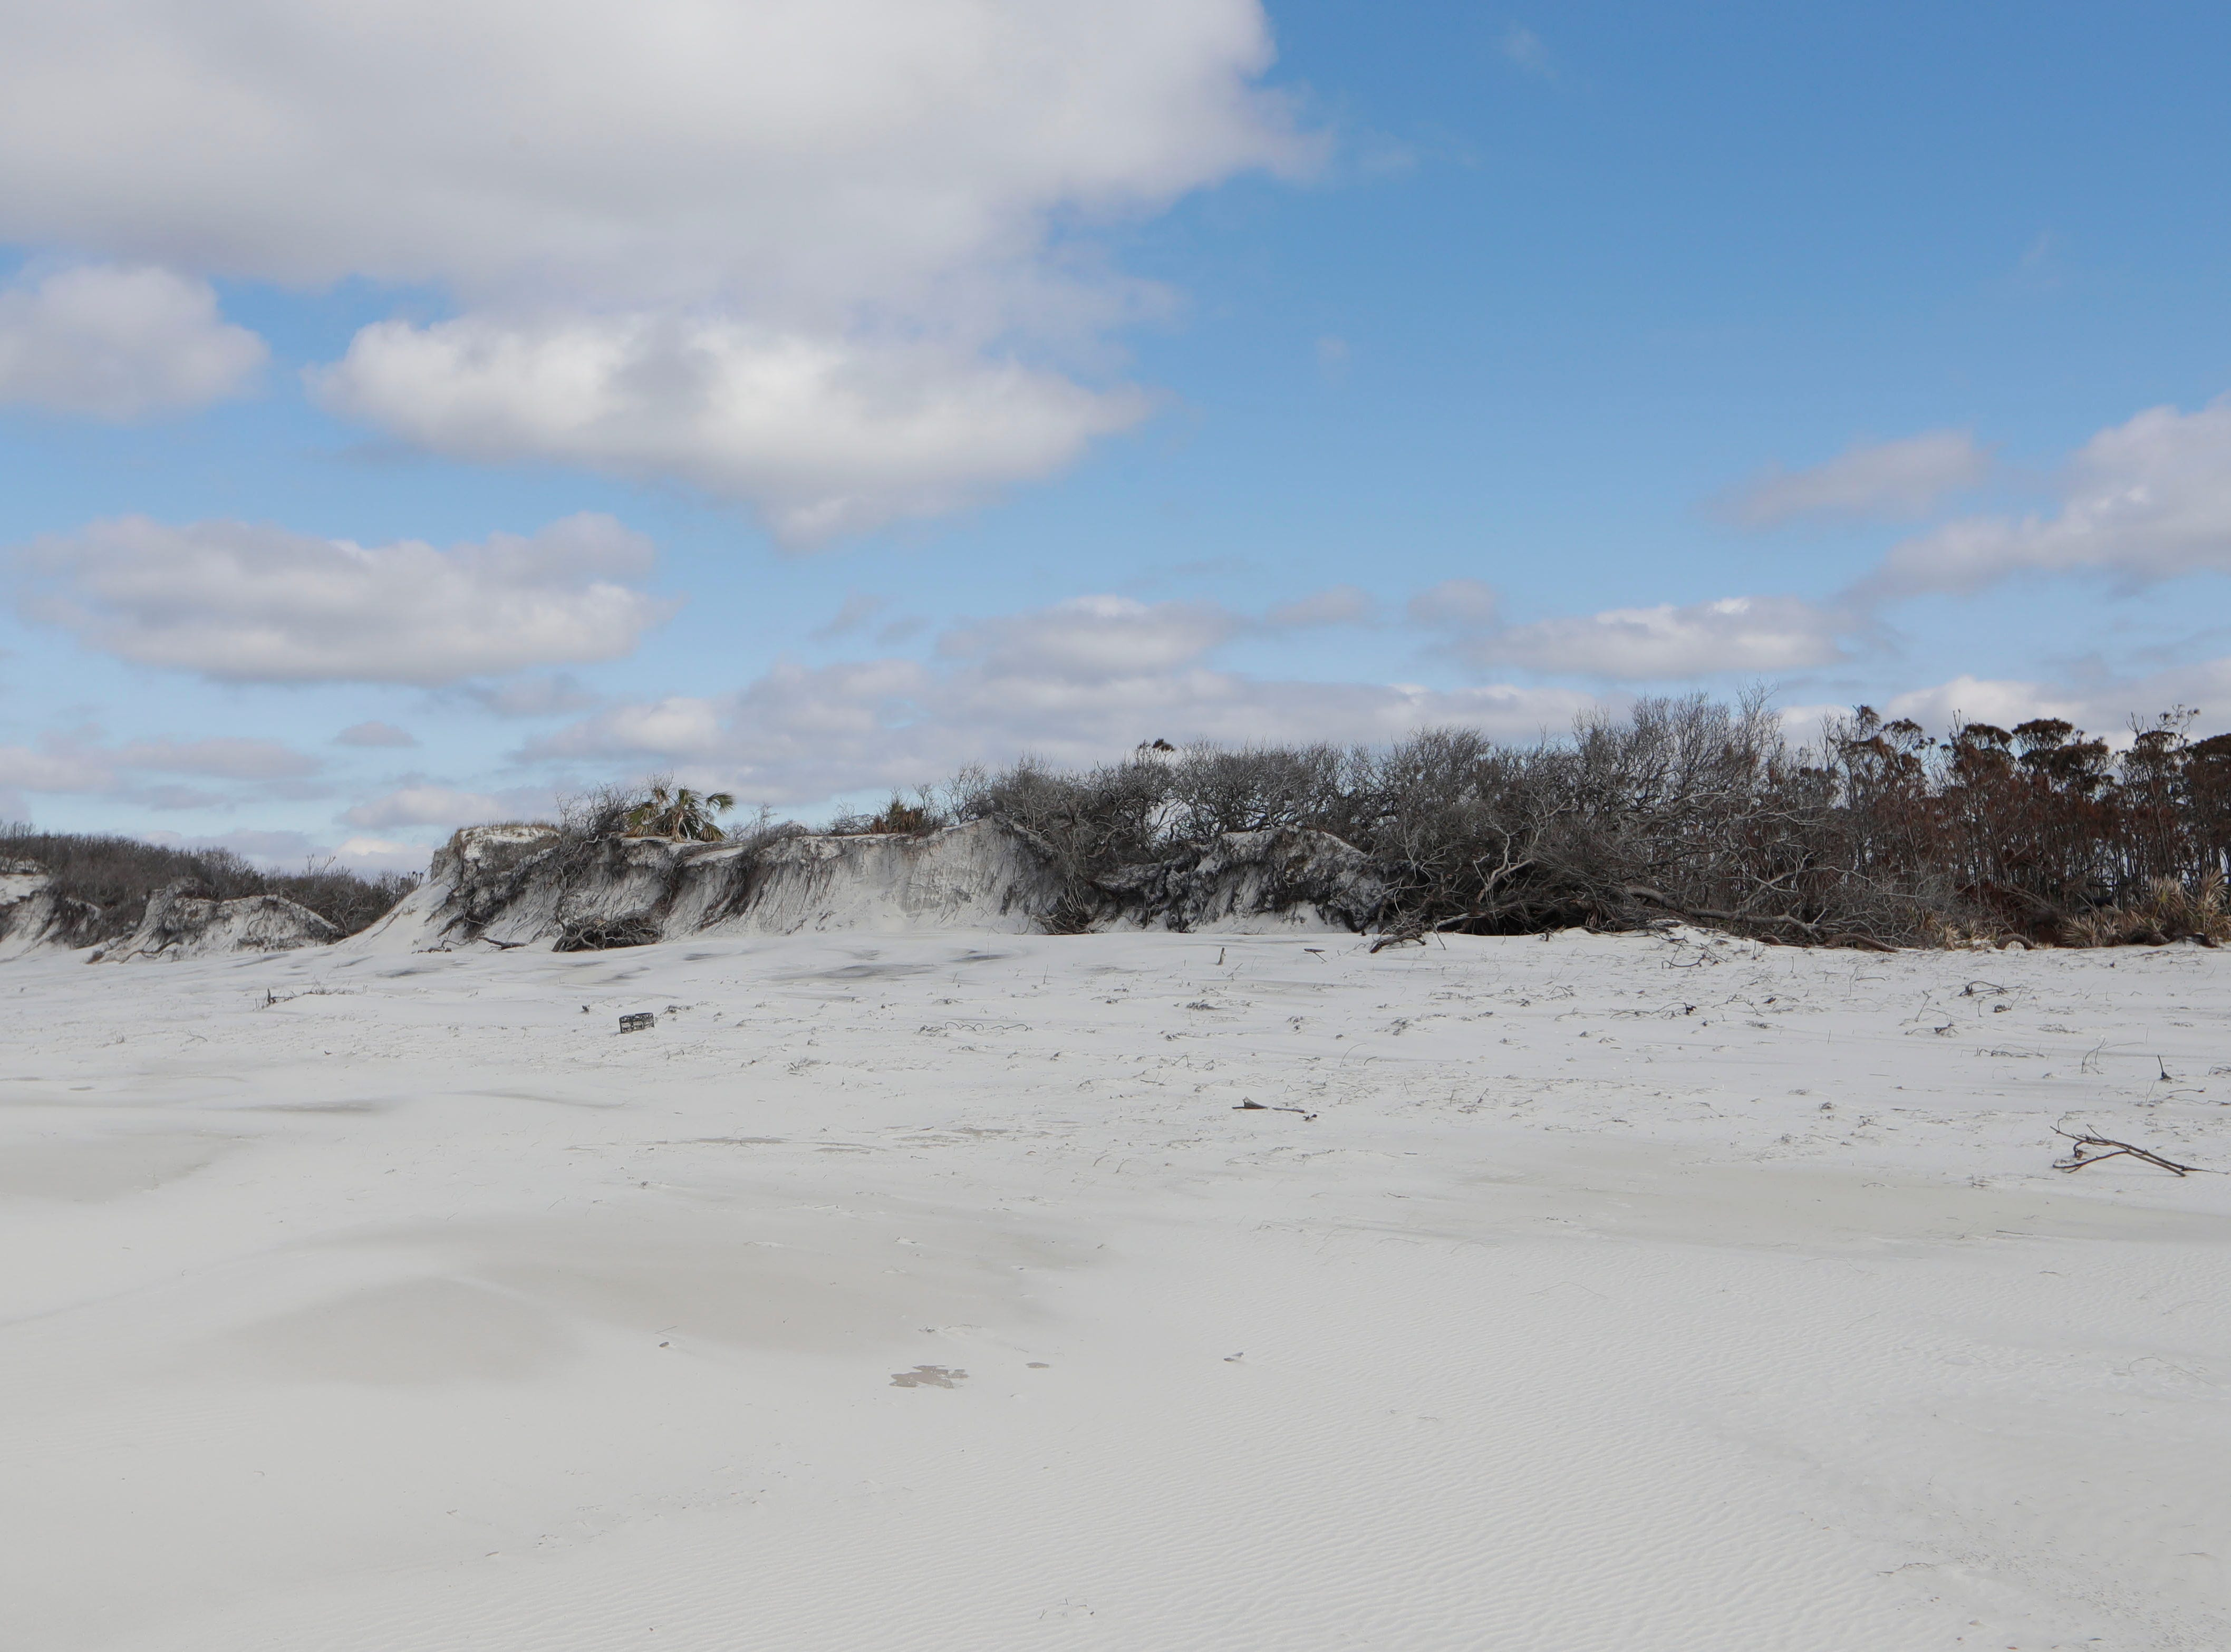 In St. Joseph Peninsula State Park, Monday, Jan. 14, 2019, sand dunes are seen that were barely touched on the left by Hurricane Michael but on the right is vegetation once covered by sand, unearthed by the destruction caused by Michael.